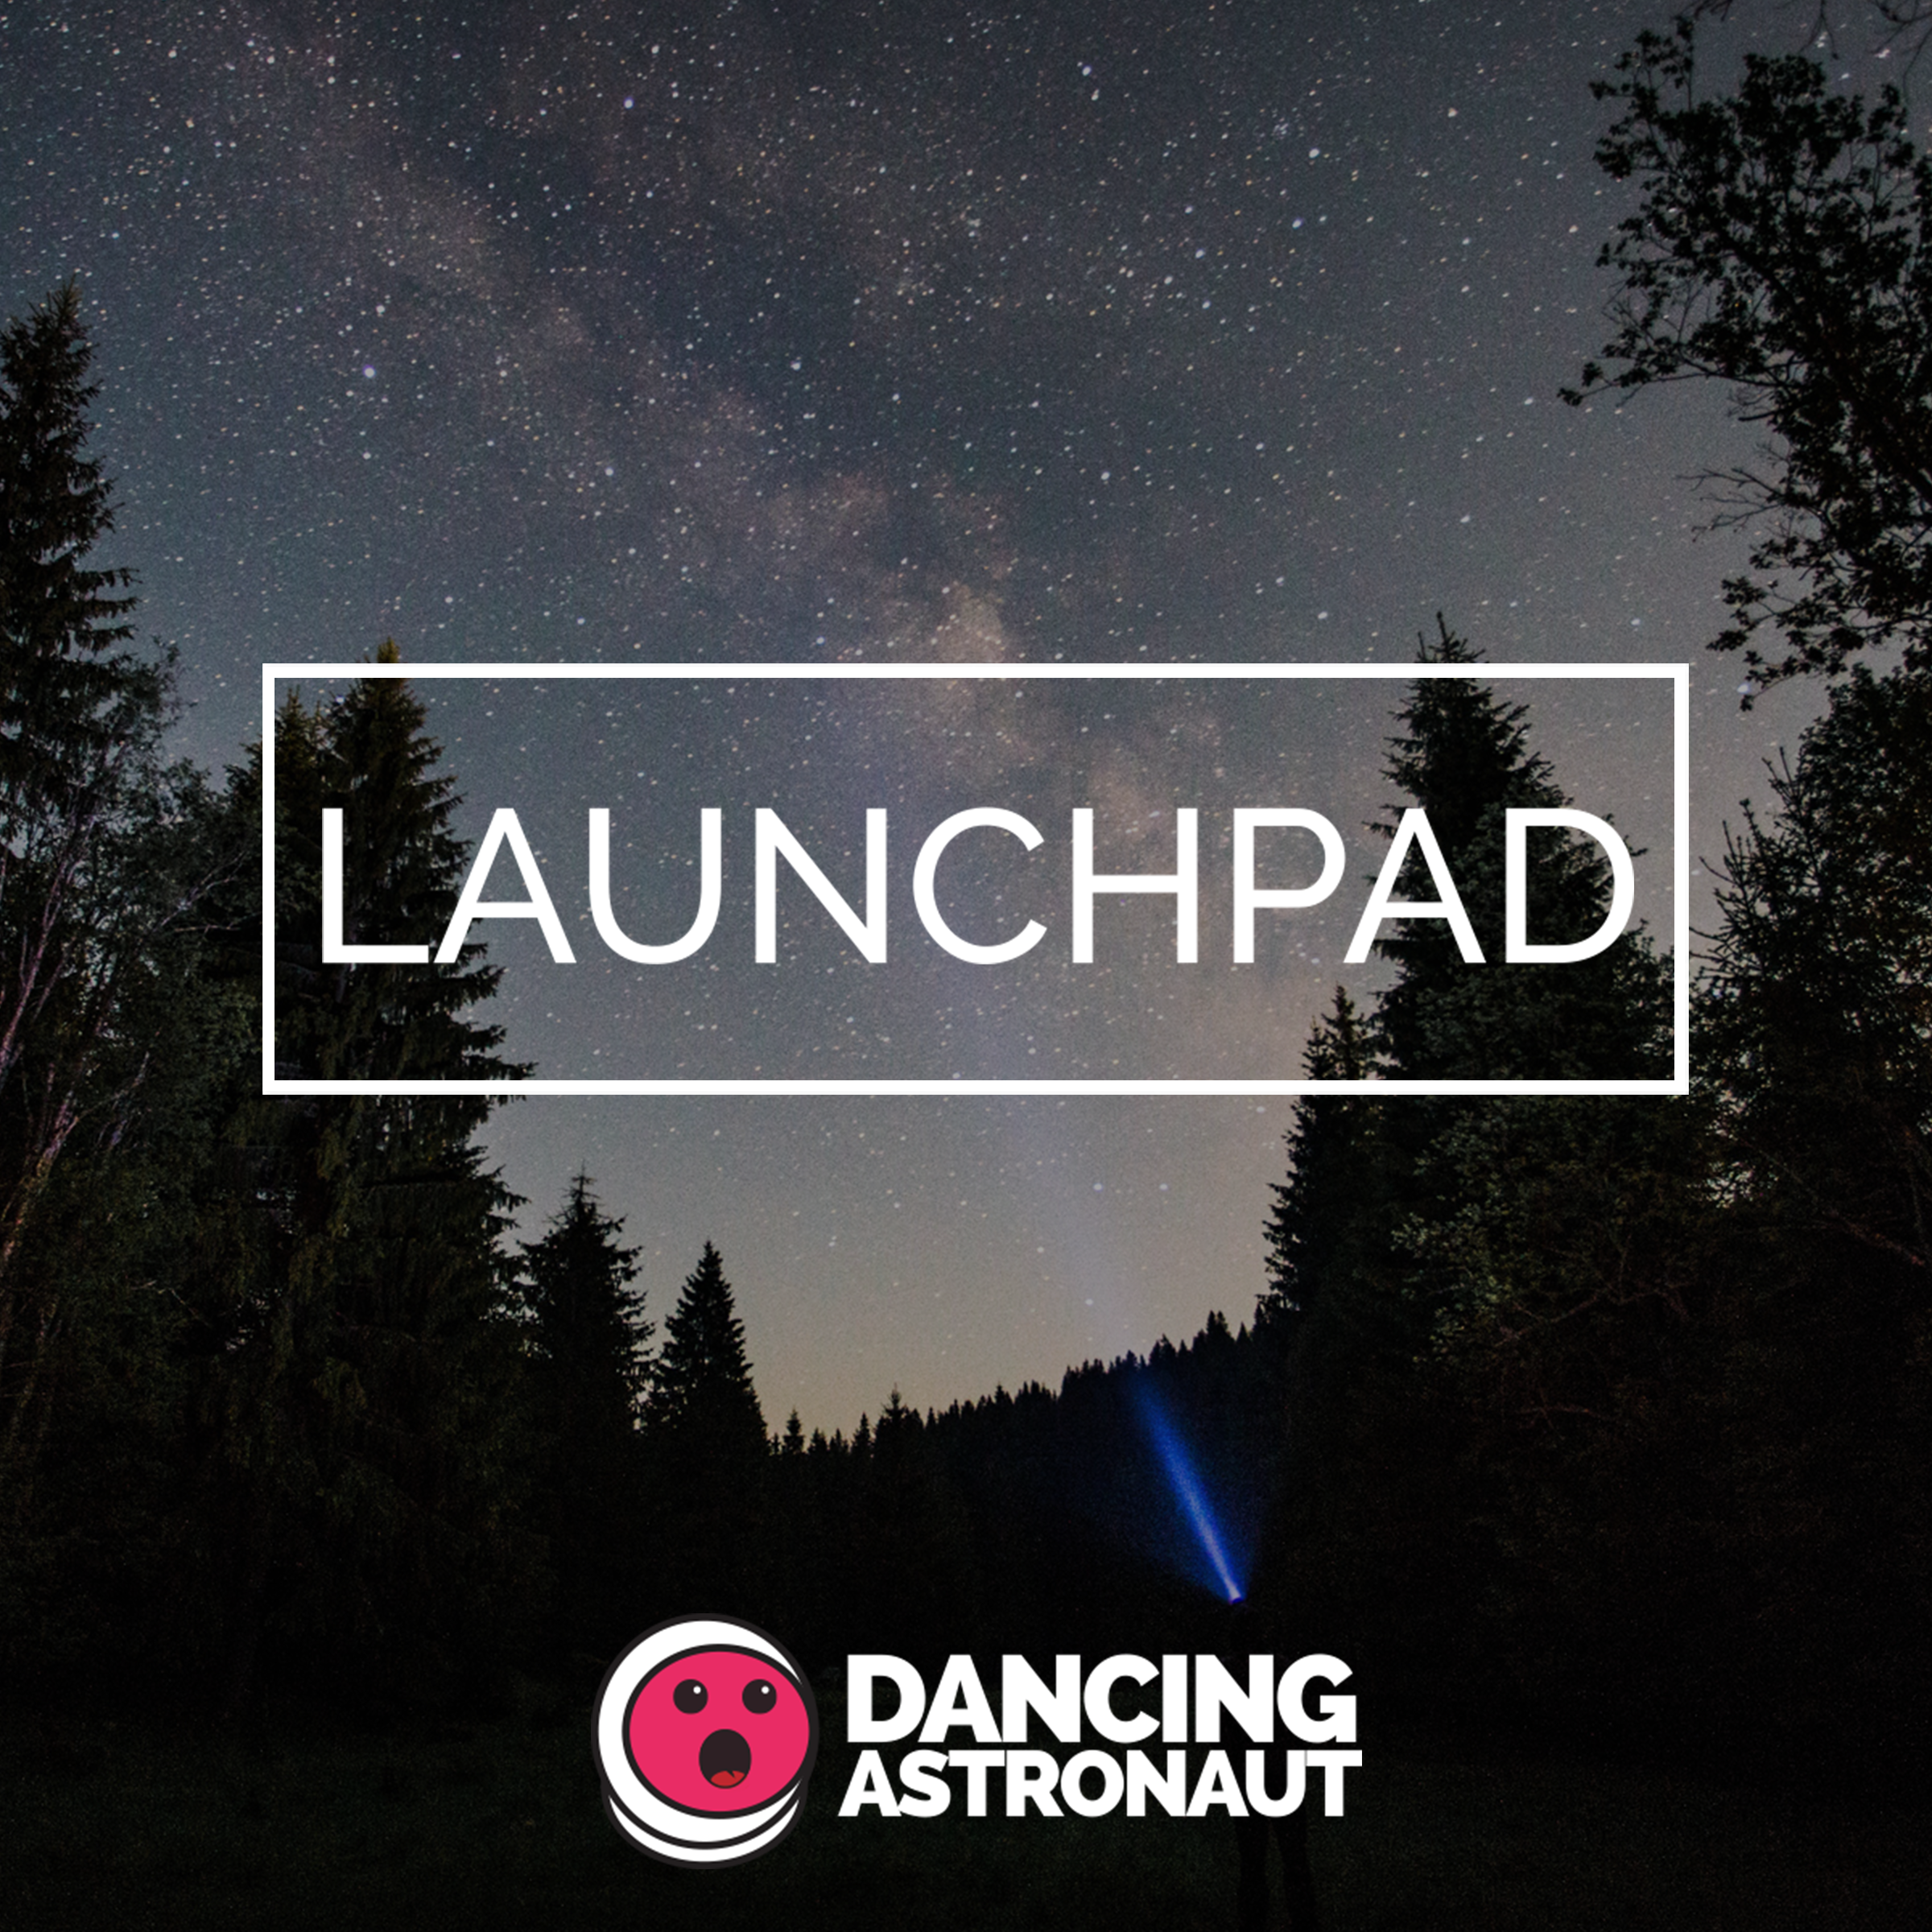 Launchpad: Dance your worries away with this expansive house playlistLaunchpad 2400